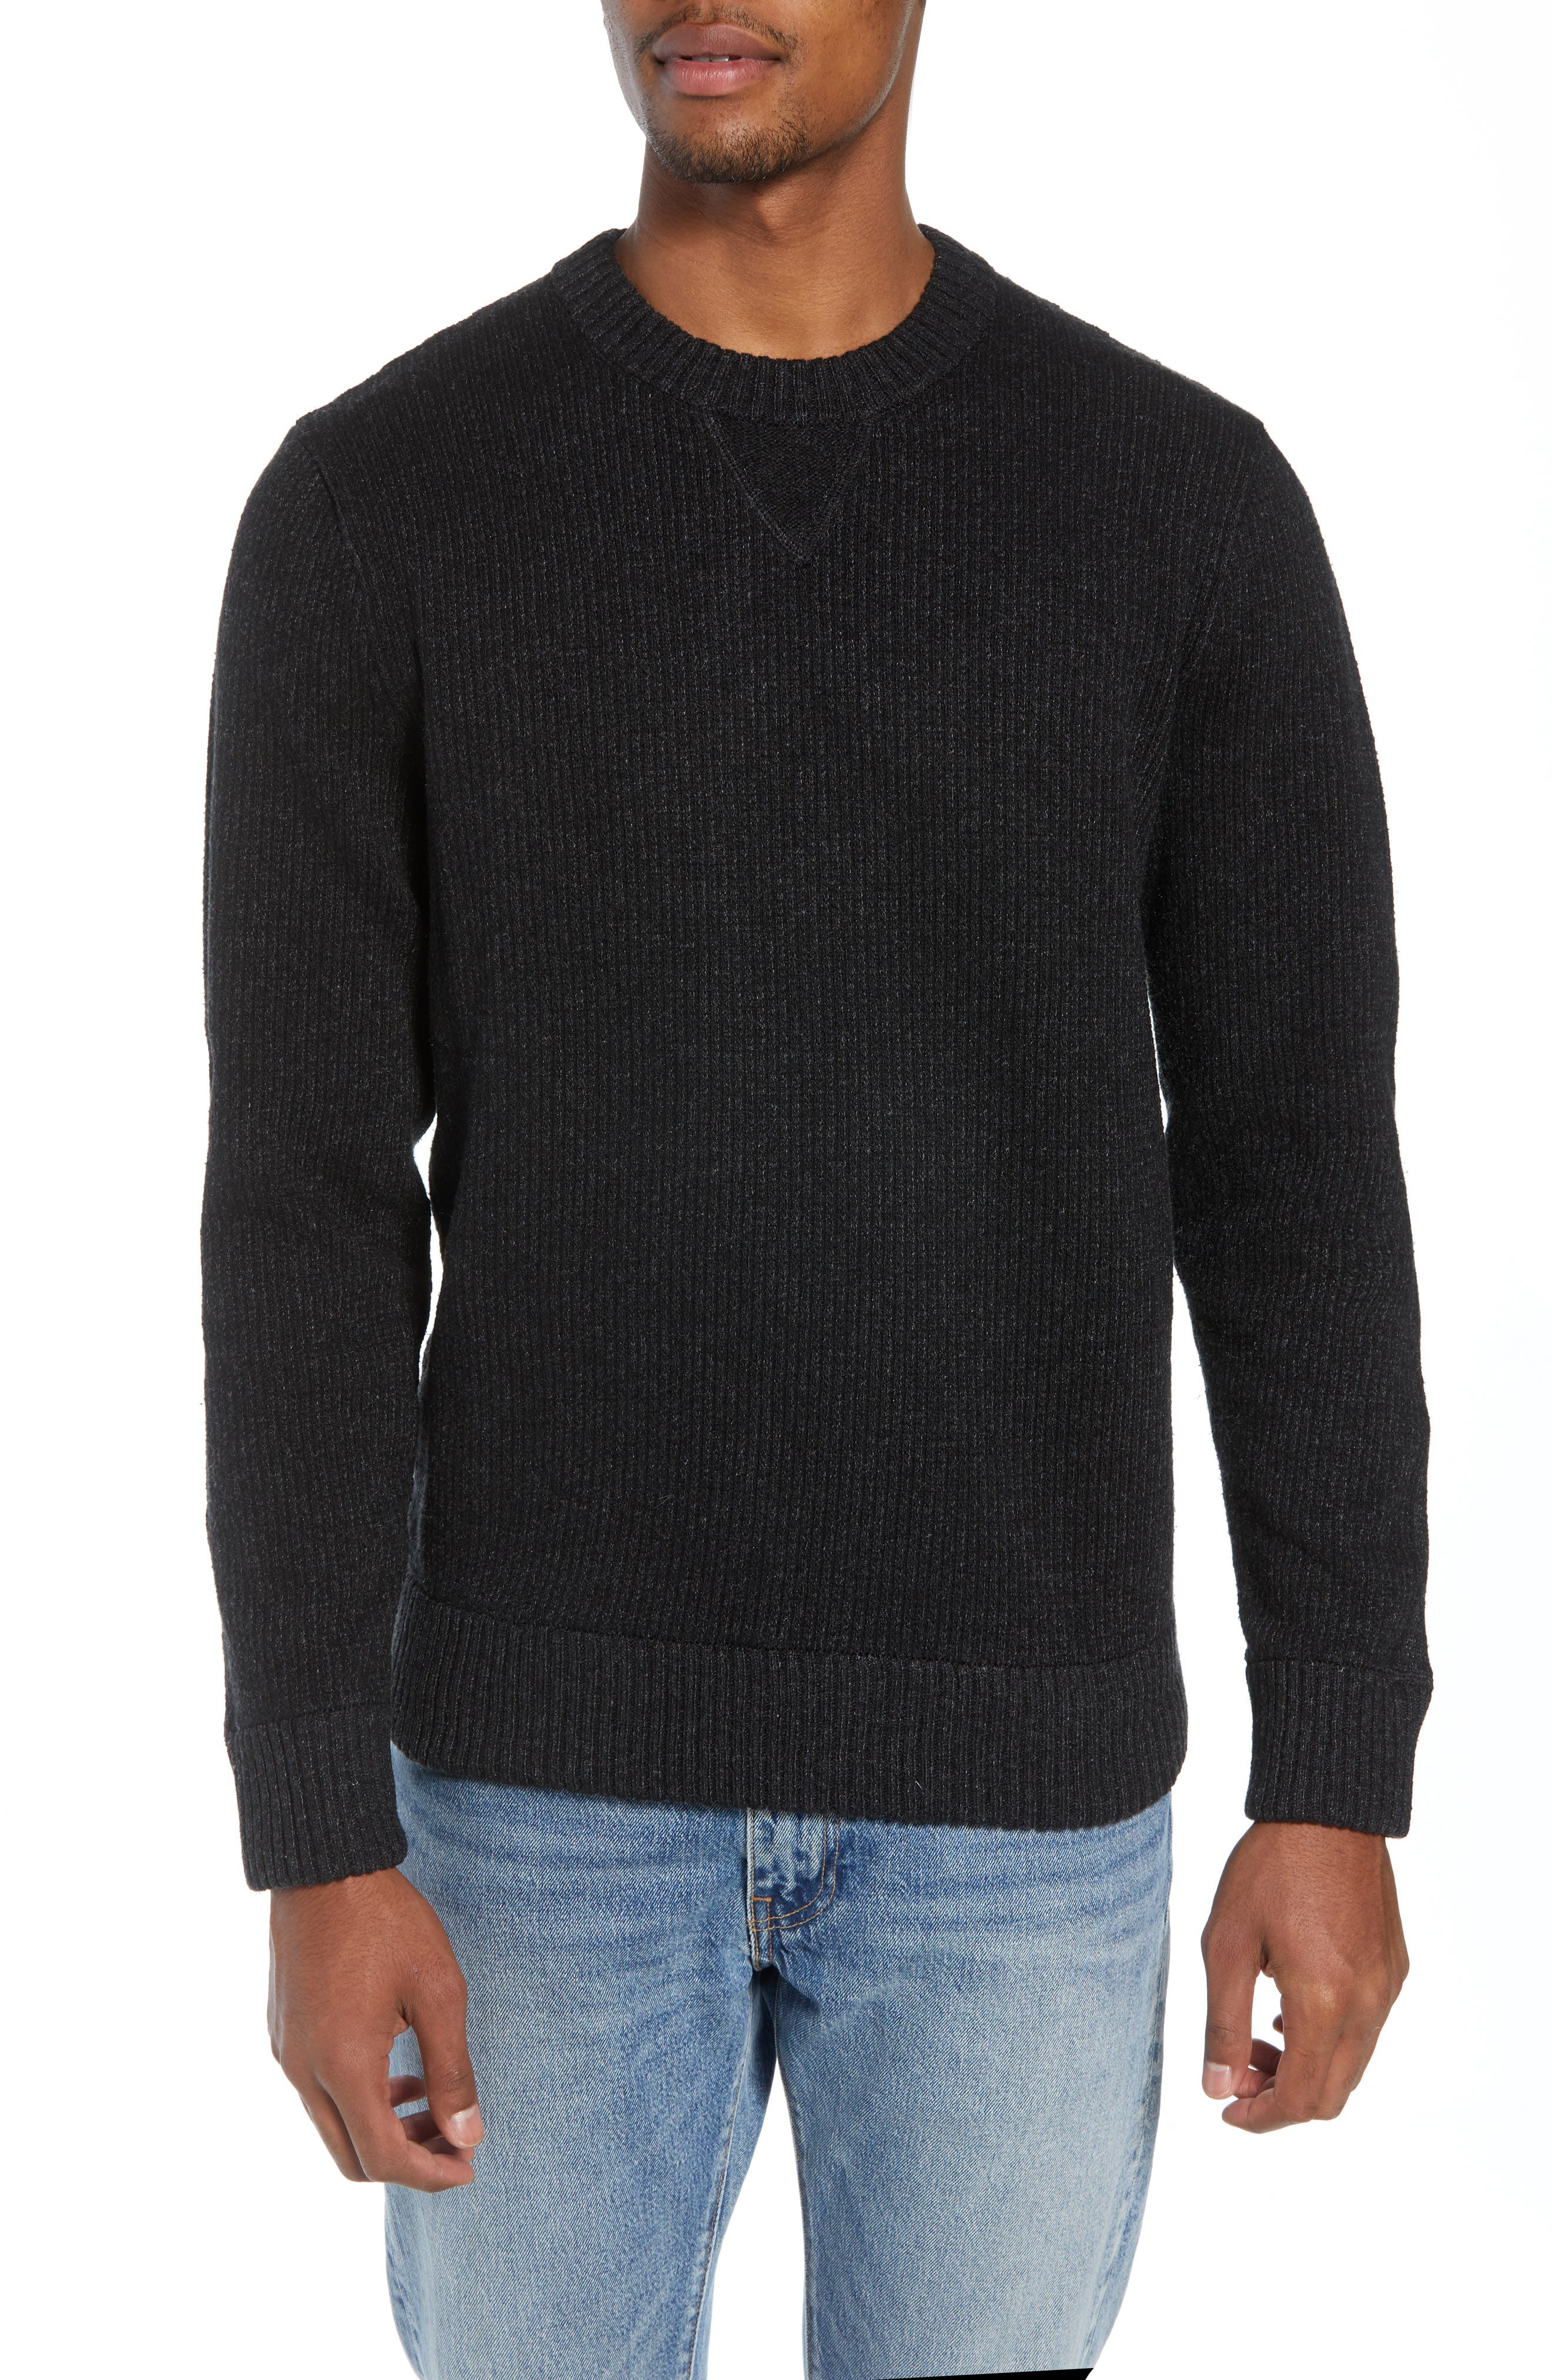 Off Country Crewneck Sweater,                         Main,                         color, 020